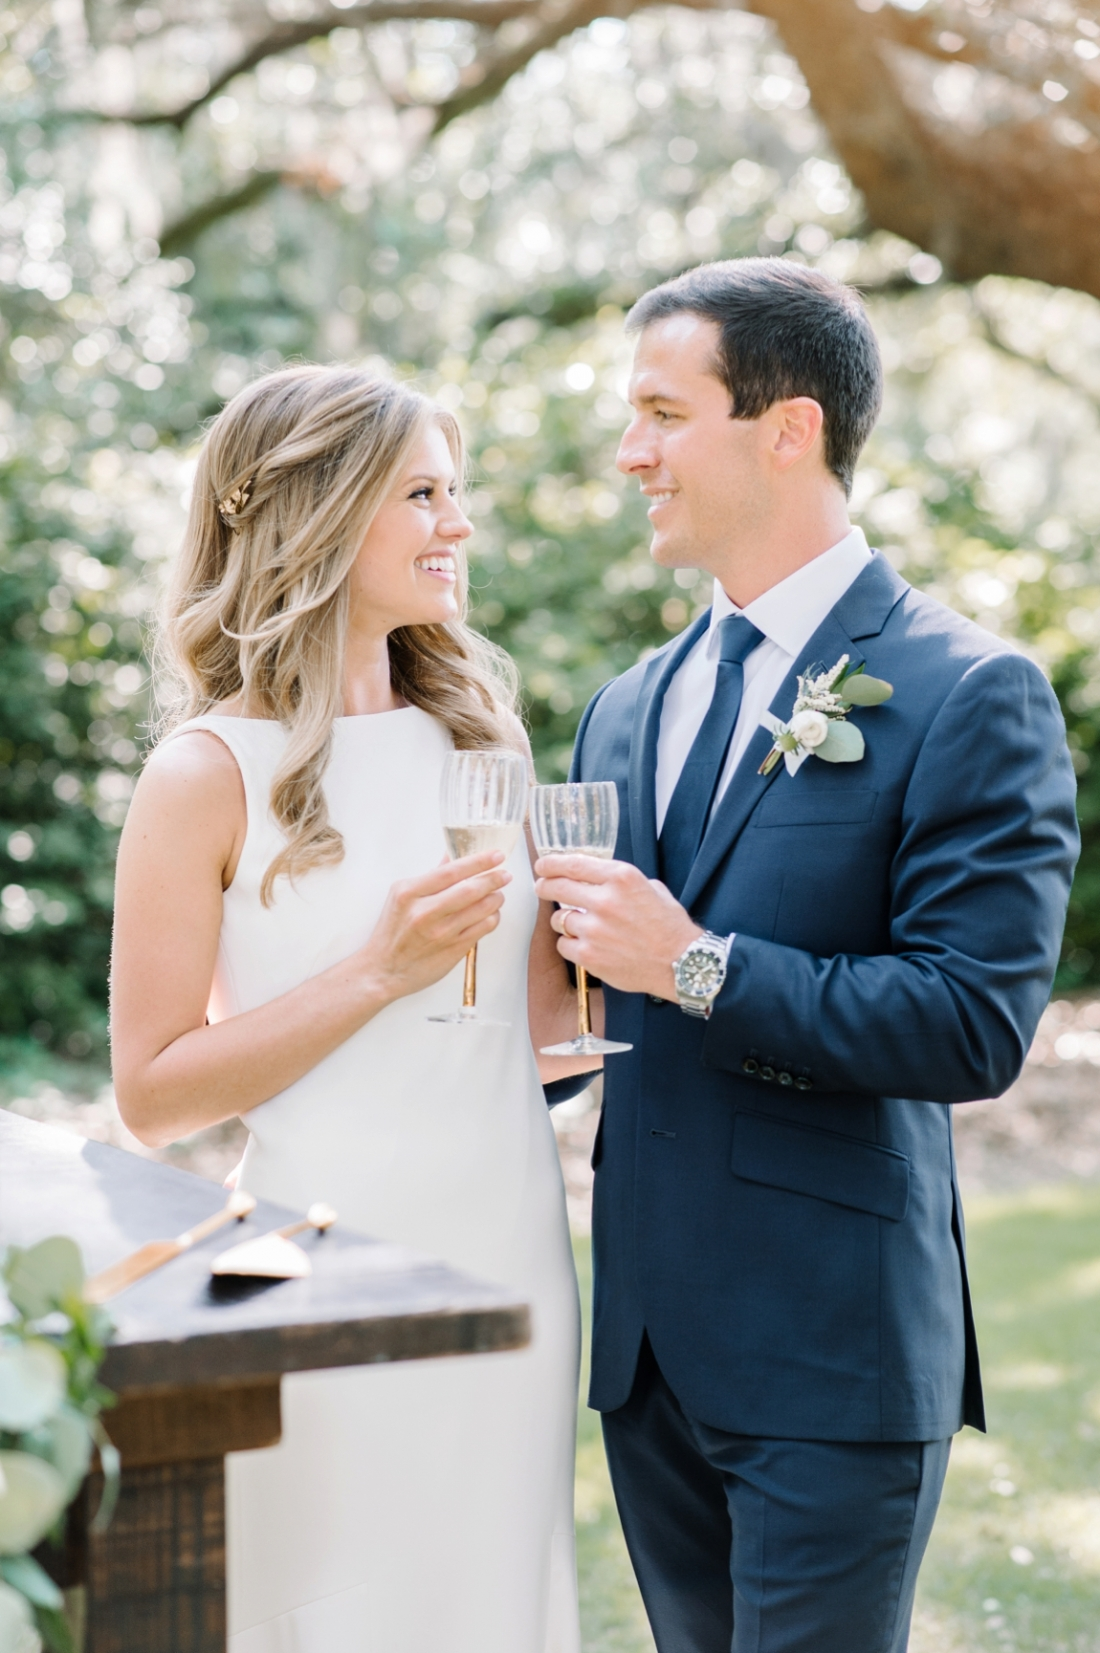 Legare Waring House elopement in Charleston, SC wedding photography by Aaron and Jillian Photography_0054